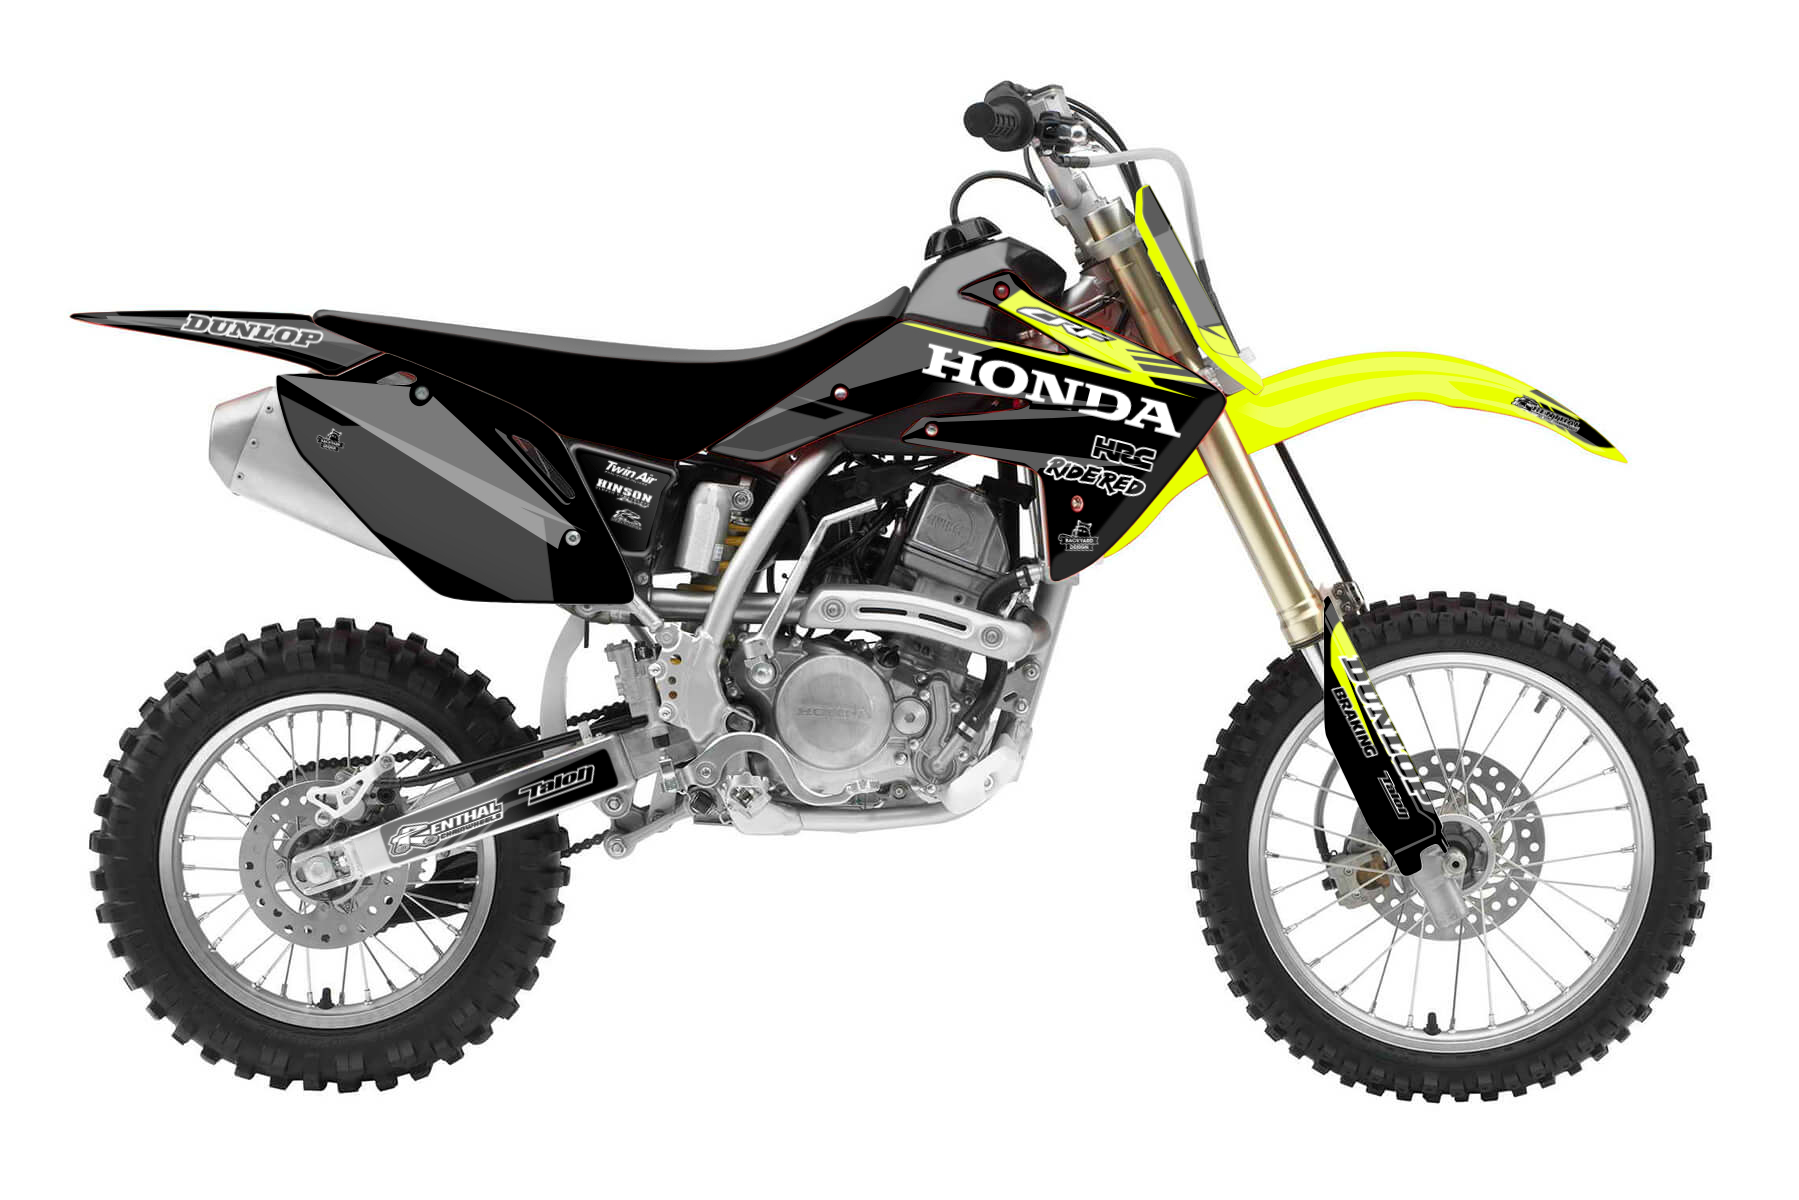 Honda CRF 150 MX Graphic Kits  A powerful four-stroke engine combines with a sturdy frame and the CRF 150 technology that promises a high performance. This bike is for all of those that have high ambitions.